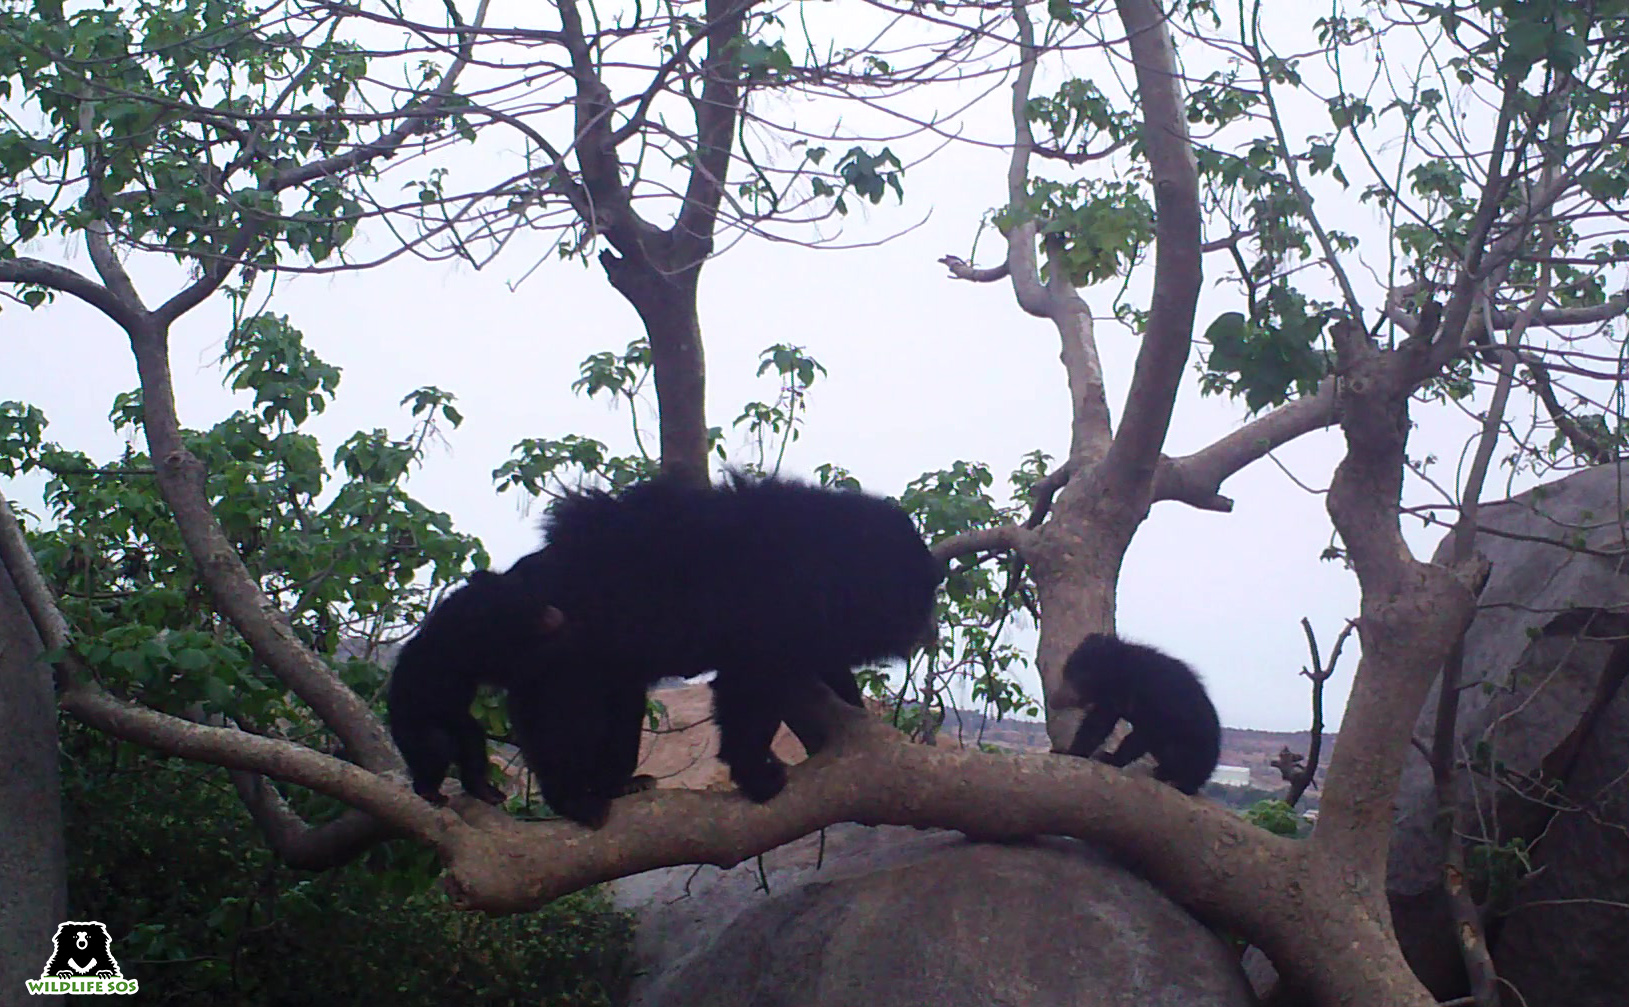 A sloth bear family photographer on camera trap. Banking on the positive attitudes of local communities towards bears, multi-faceted conservation approaches may be the only way to protect the species. Photo from Wildlife SOS.